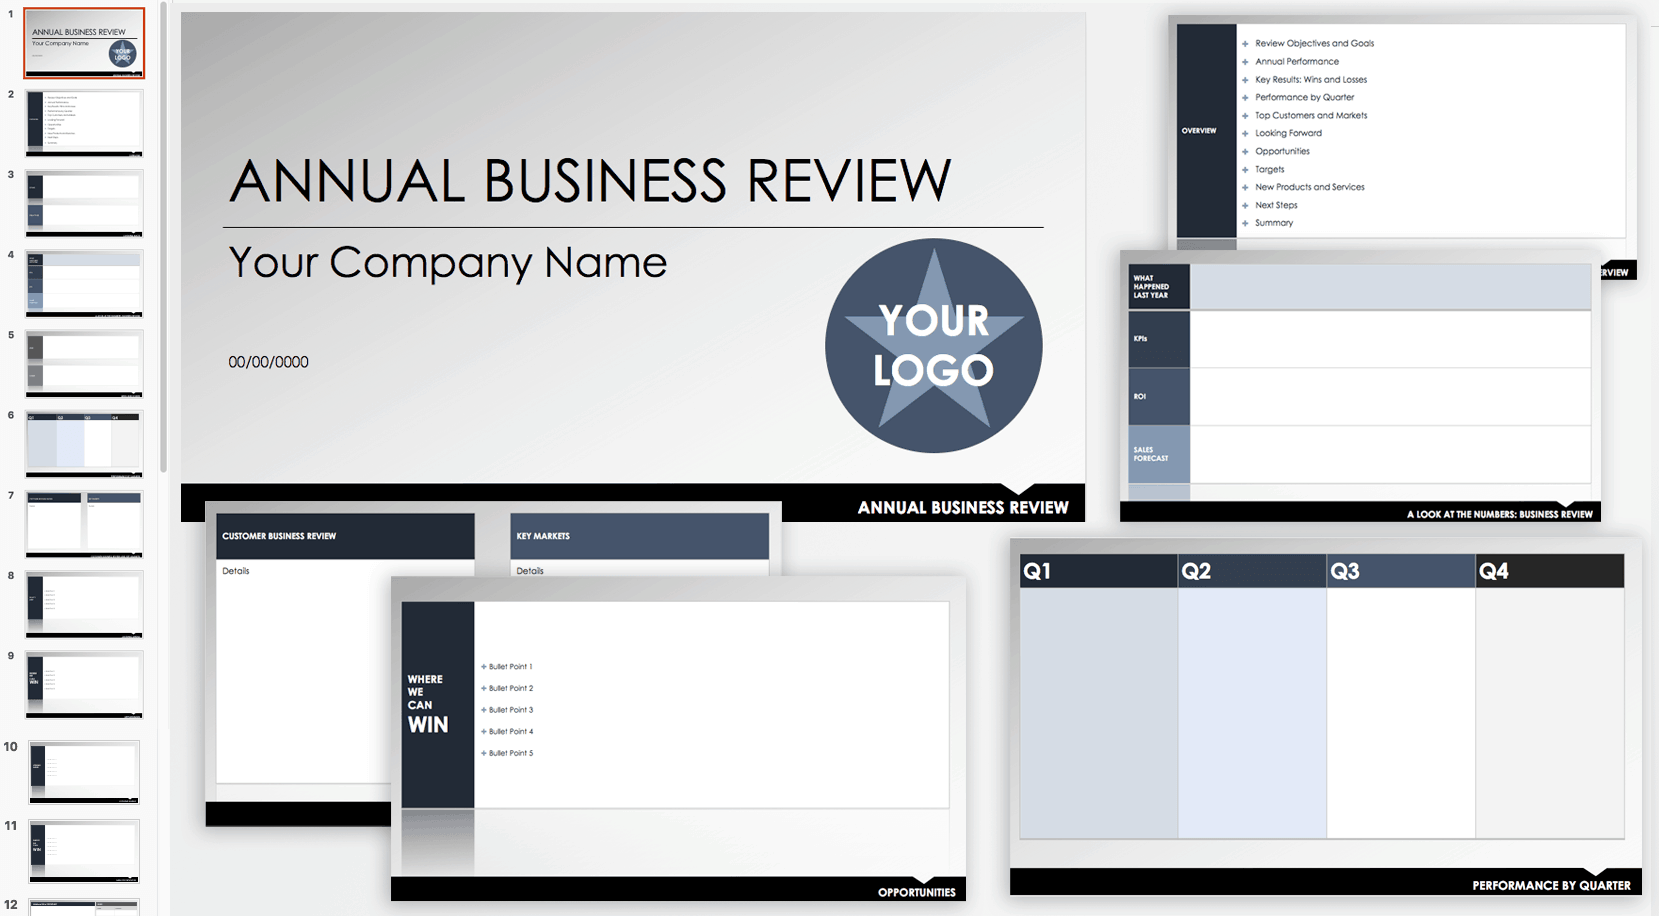 Free QBR and Business Review Templates | Smartsheet